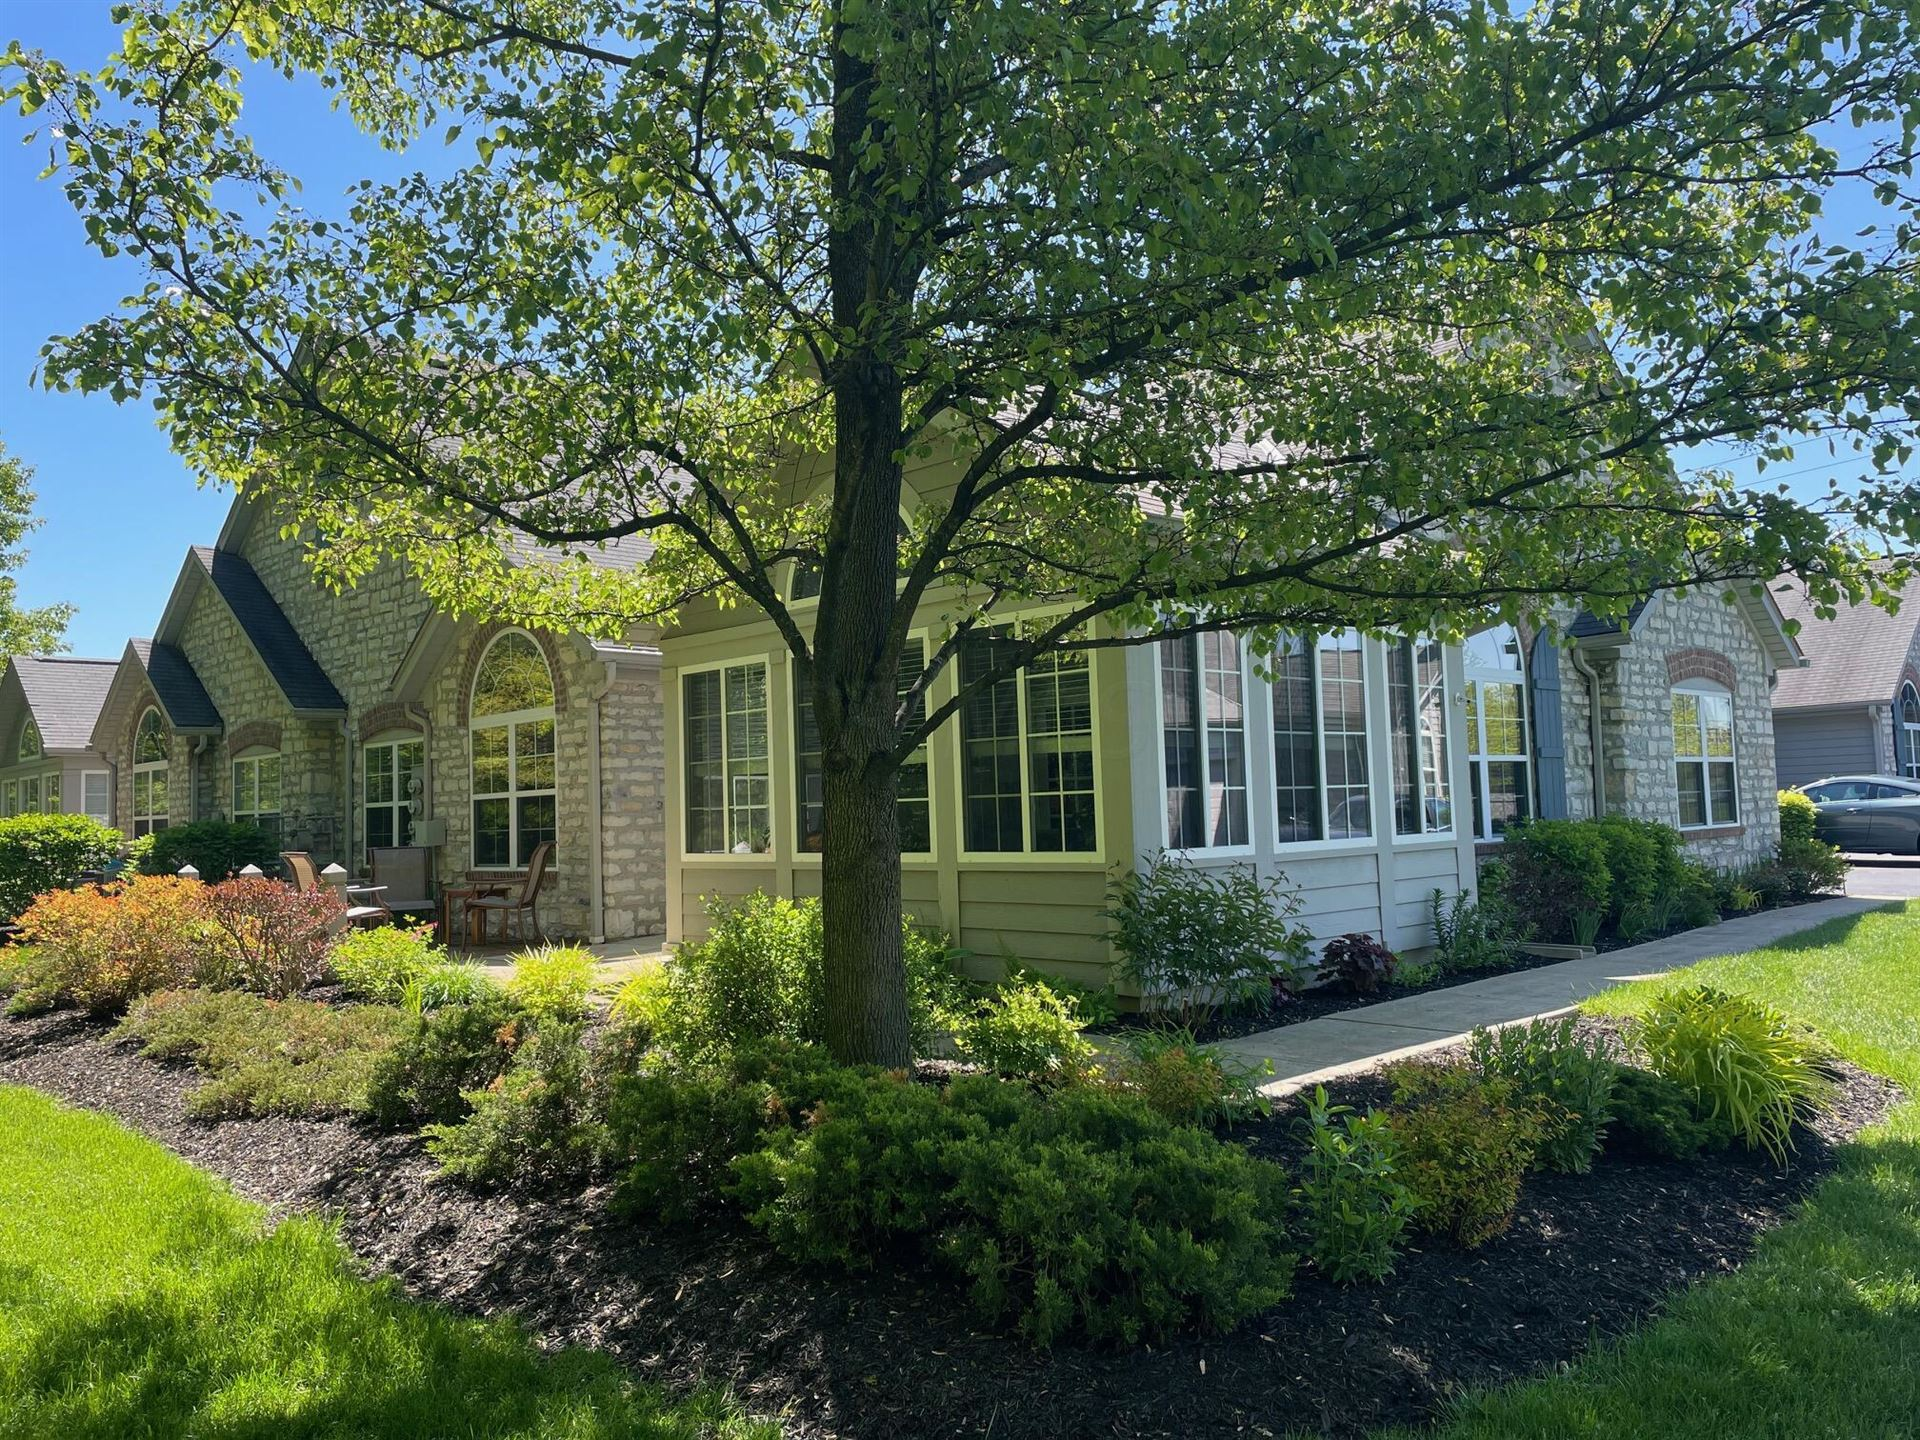 Photo of 6230 Brickside Drive #25-623, New Albany, OH 43054 (MLS # 221040830)